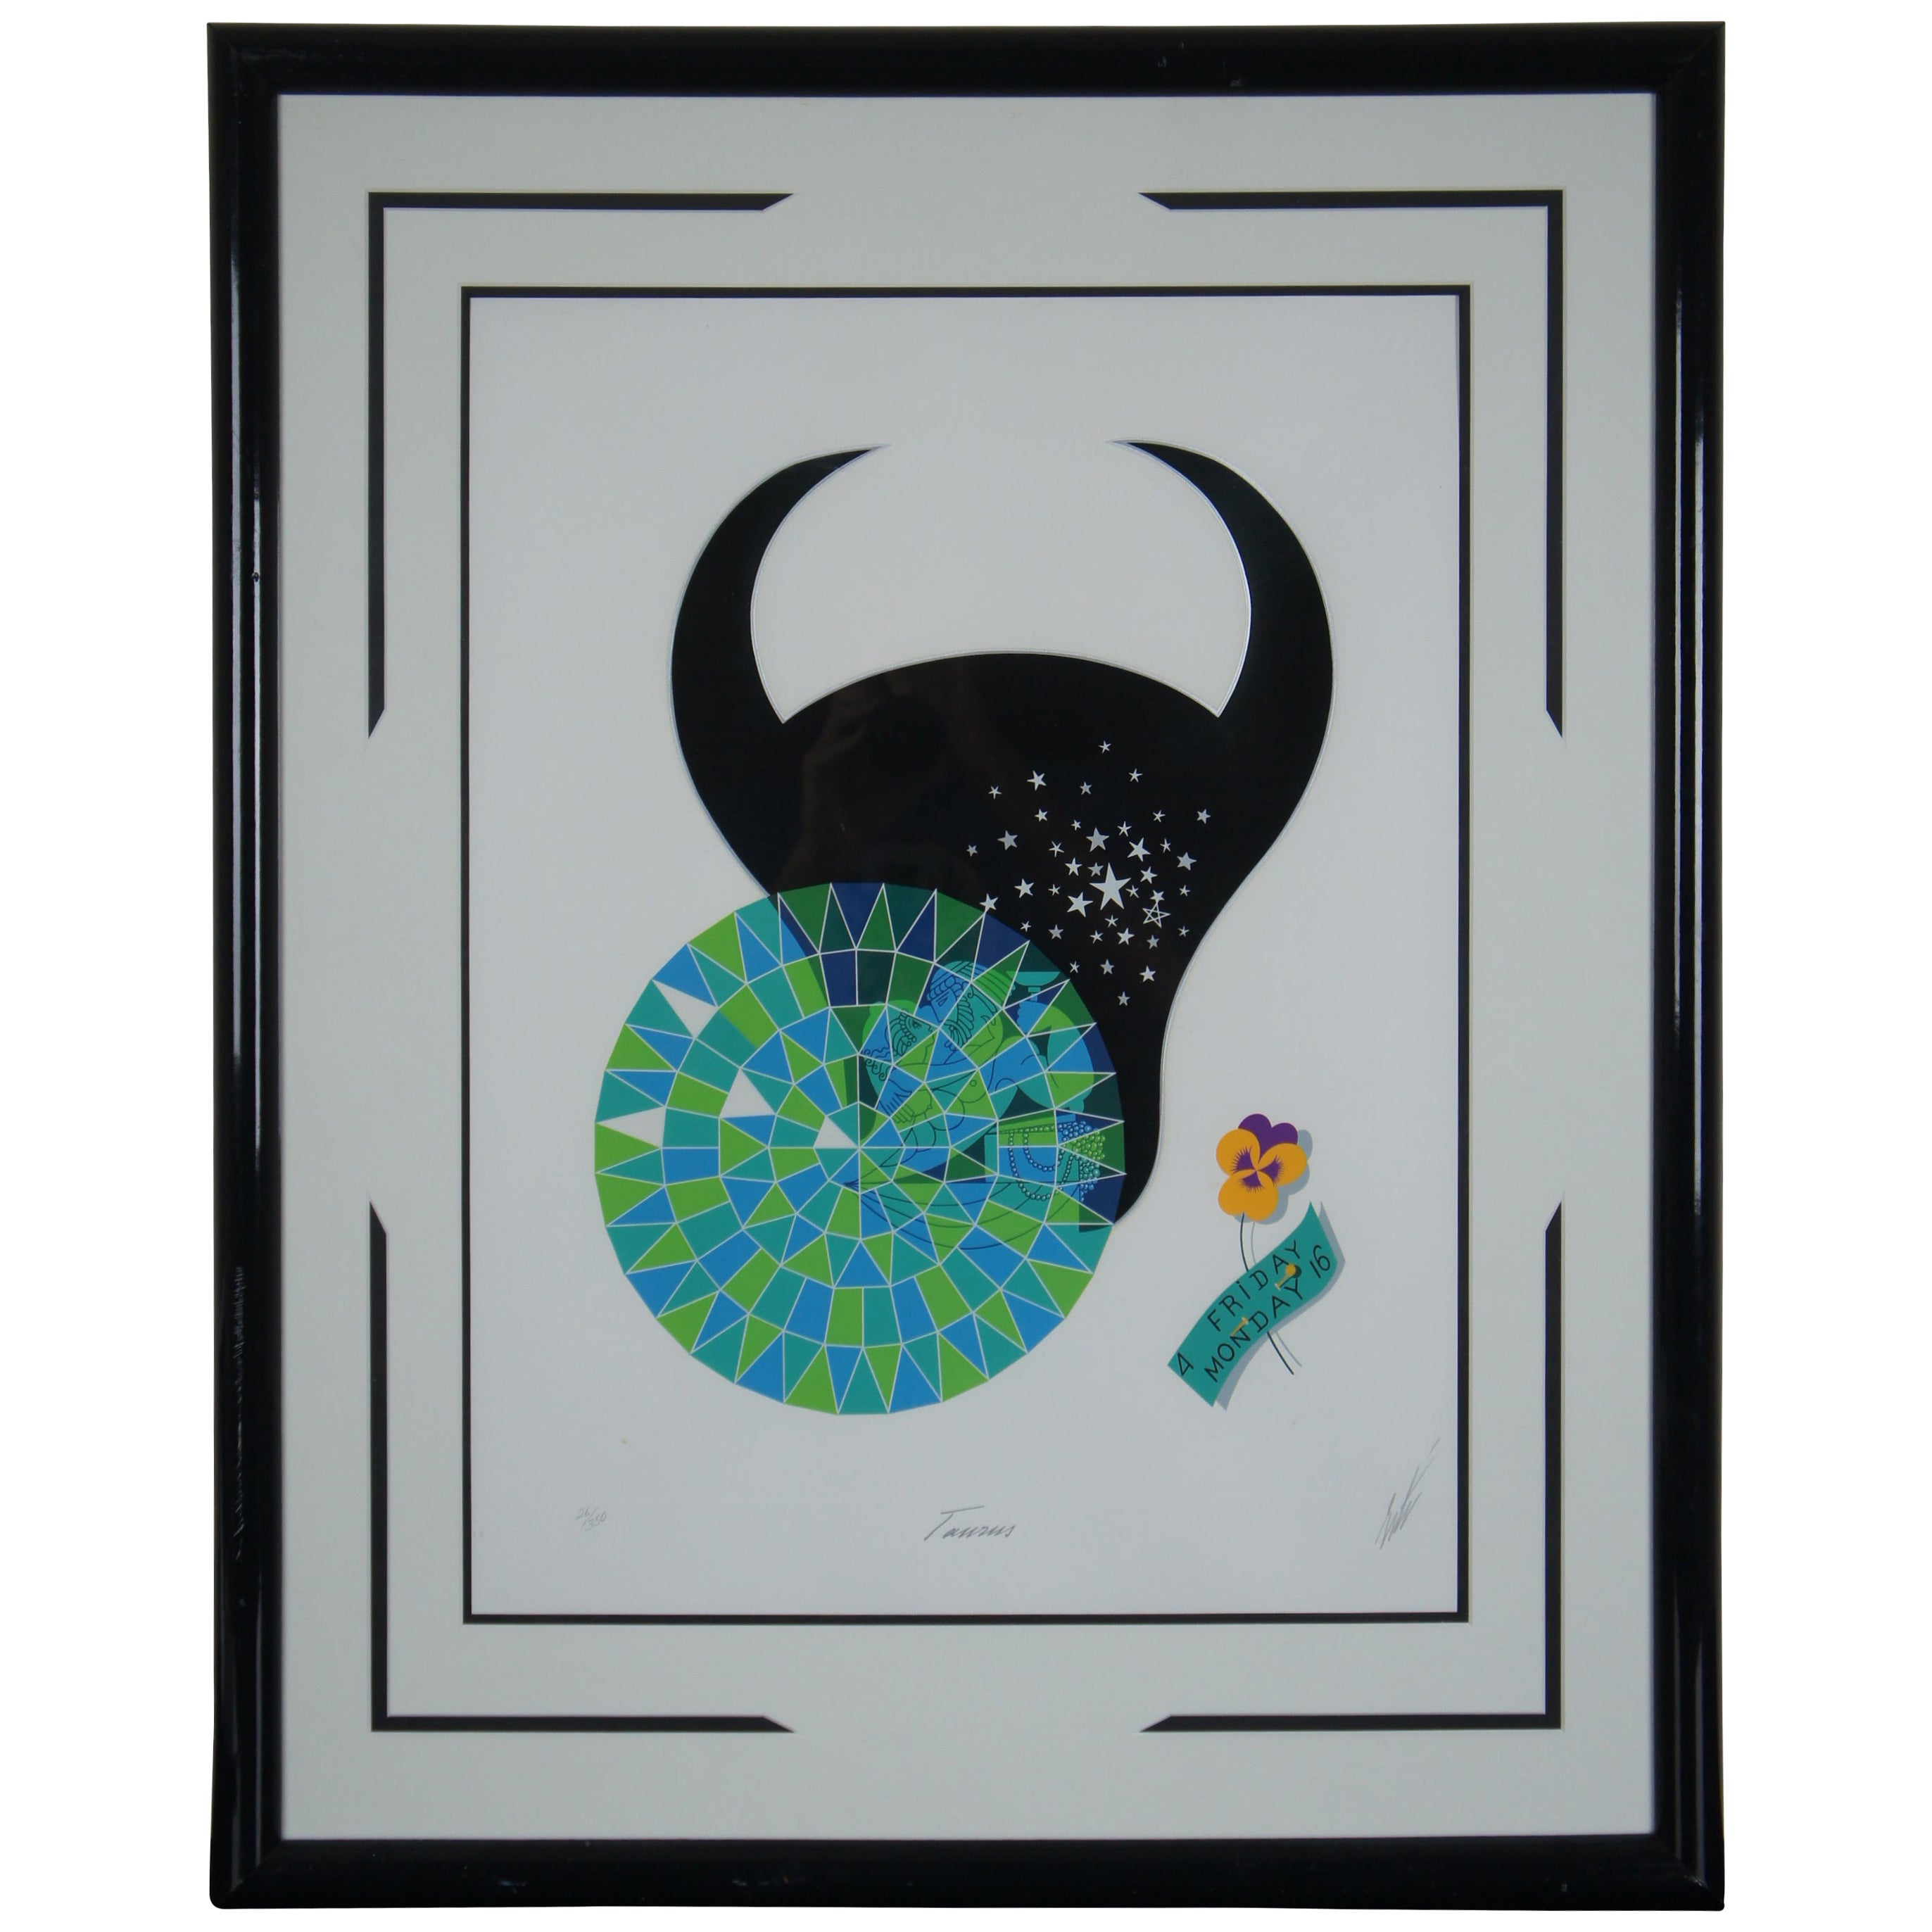 Zodiac Taurus by Erté Limited Edition Serigraph Print Art Deco Astrology